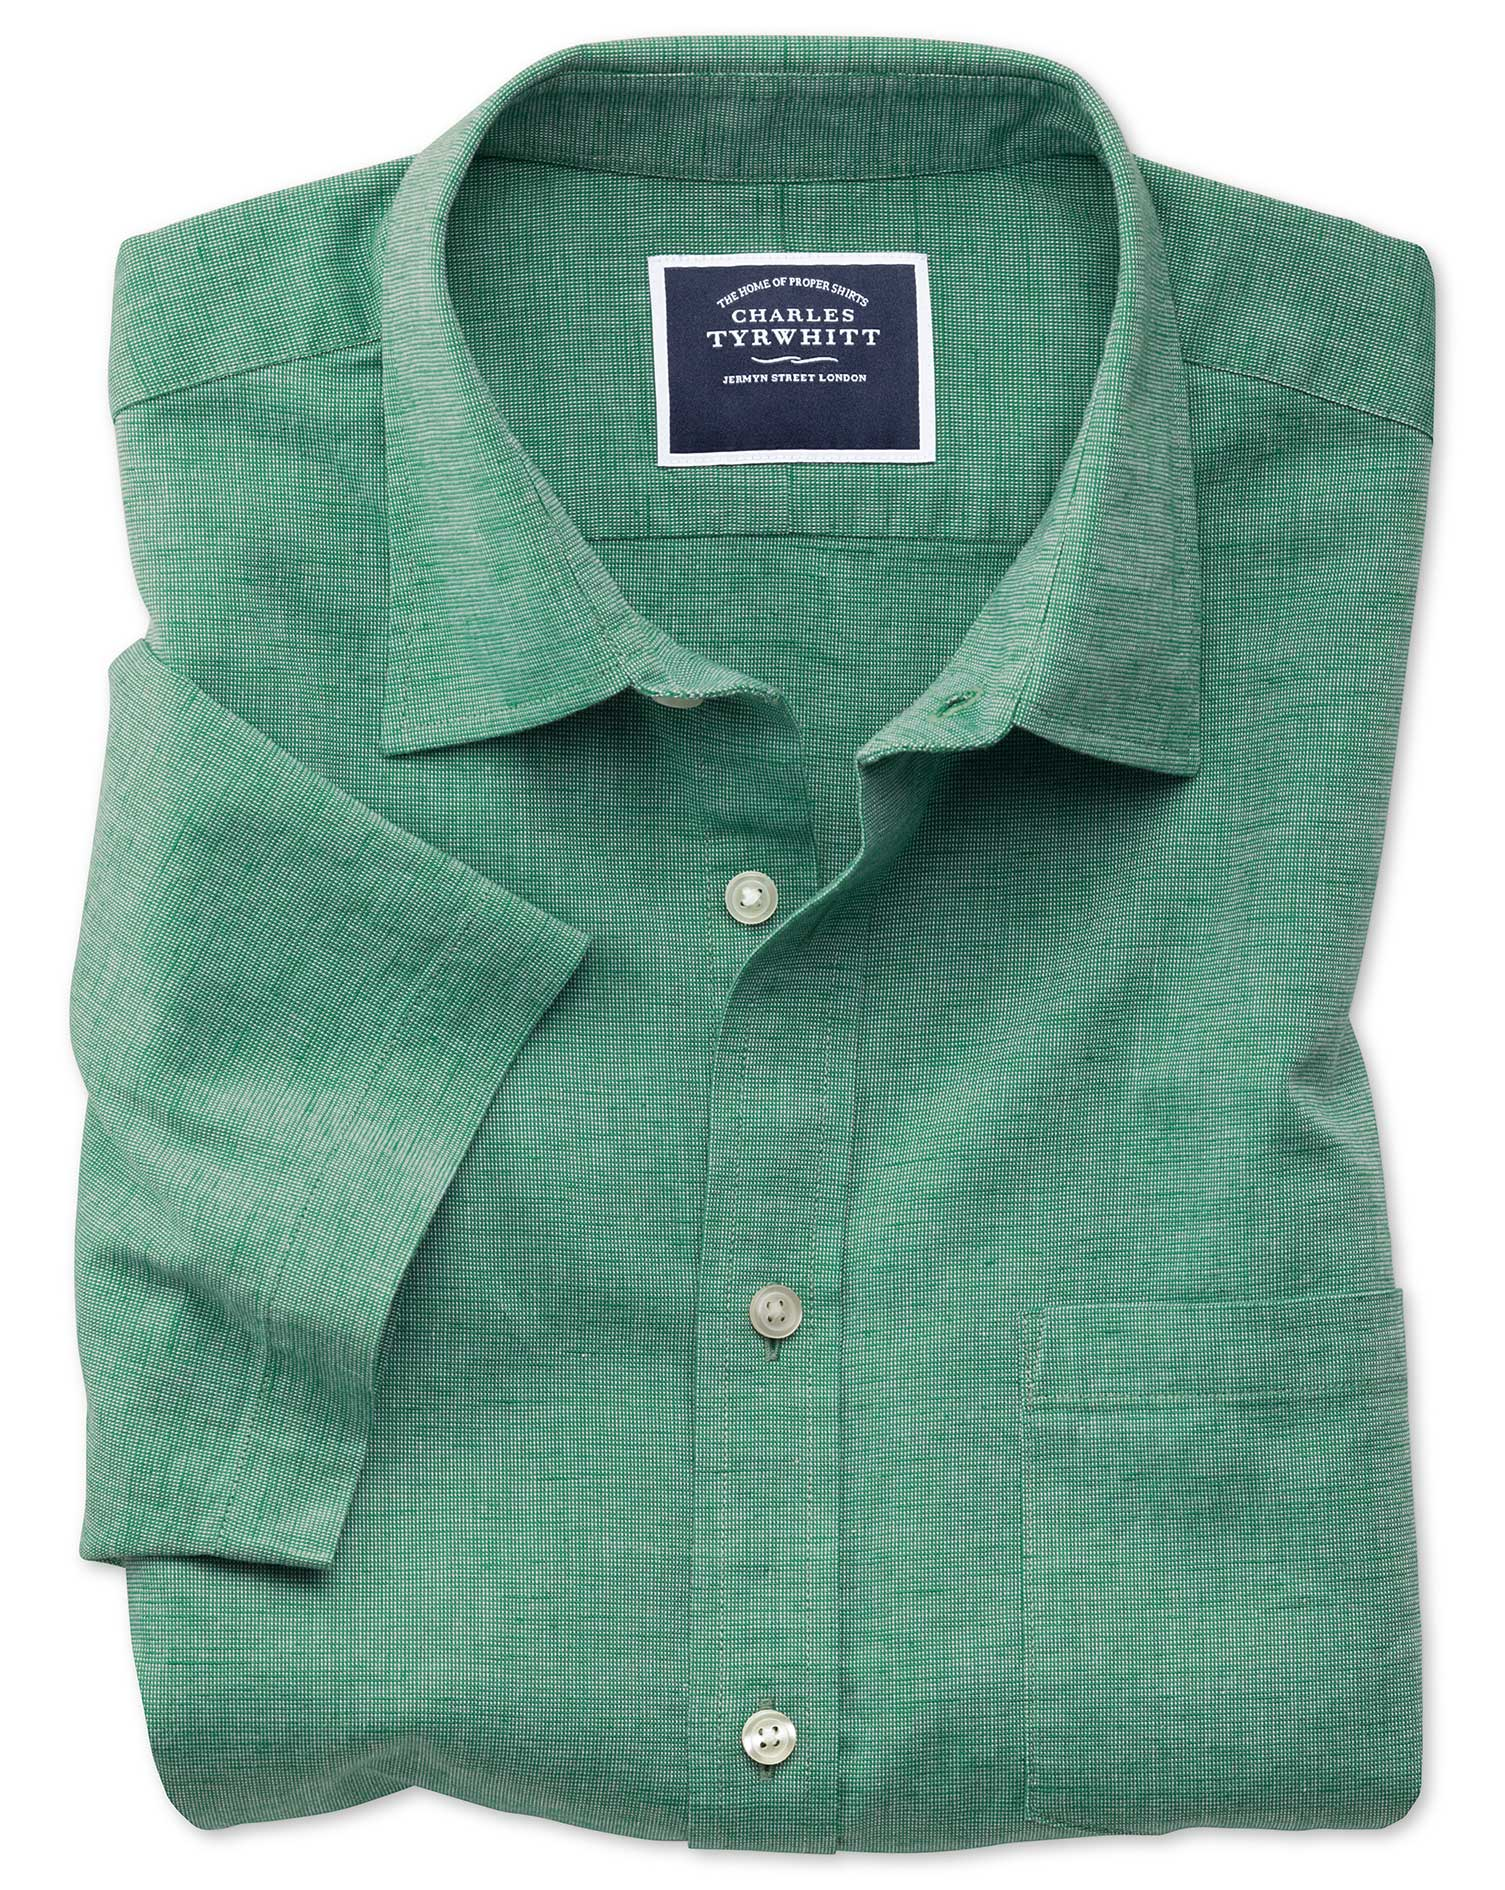 Classic Fit Cotton Linen Short Sleeve Green Plain Shirt Single Cuff Size Medium by Charles Tyrwhitt